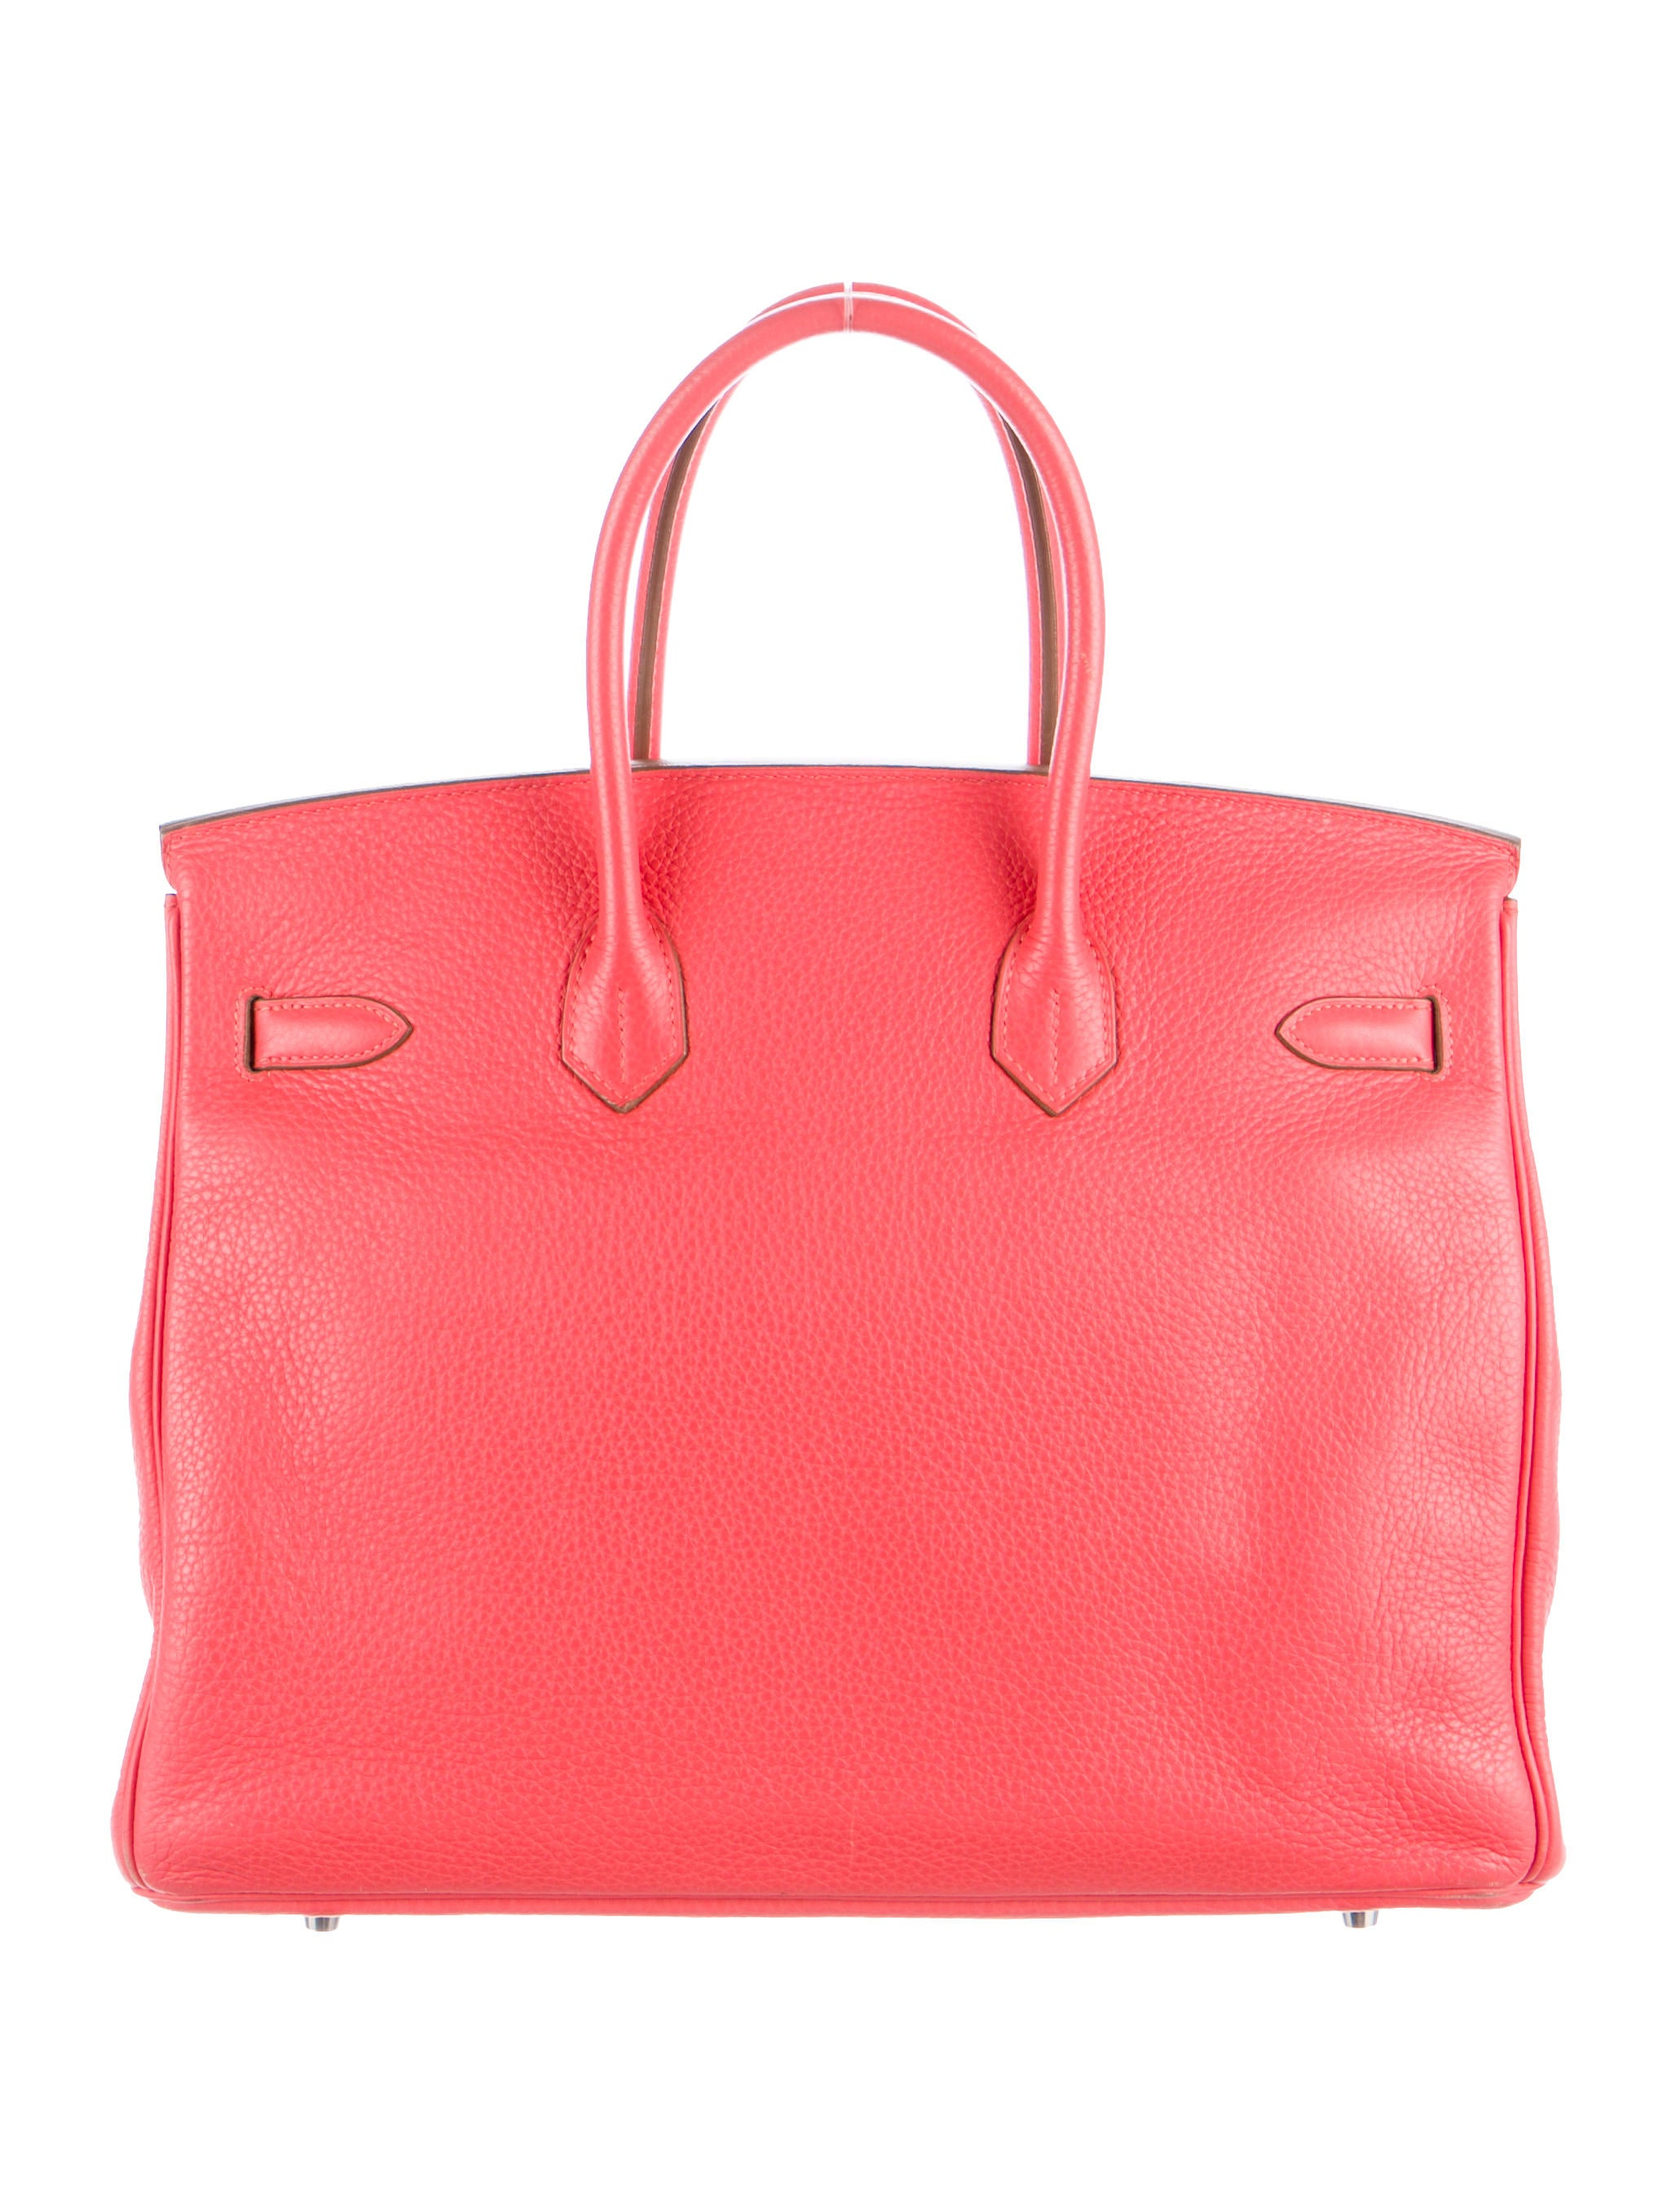 Herm232s Clemence Birkin 35 Handbags HER109146 The  : HER1091463enlarged from www.therealreal.com size 2056 x 2713 jpeg 414kB